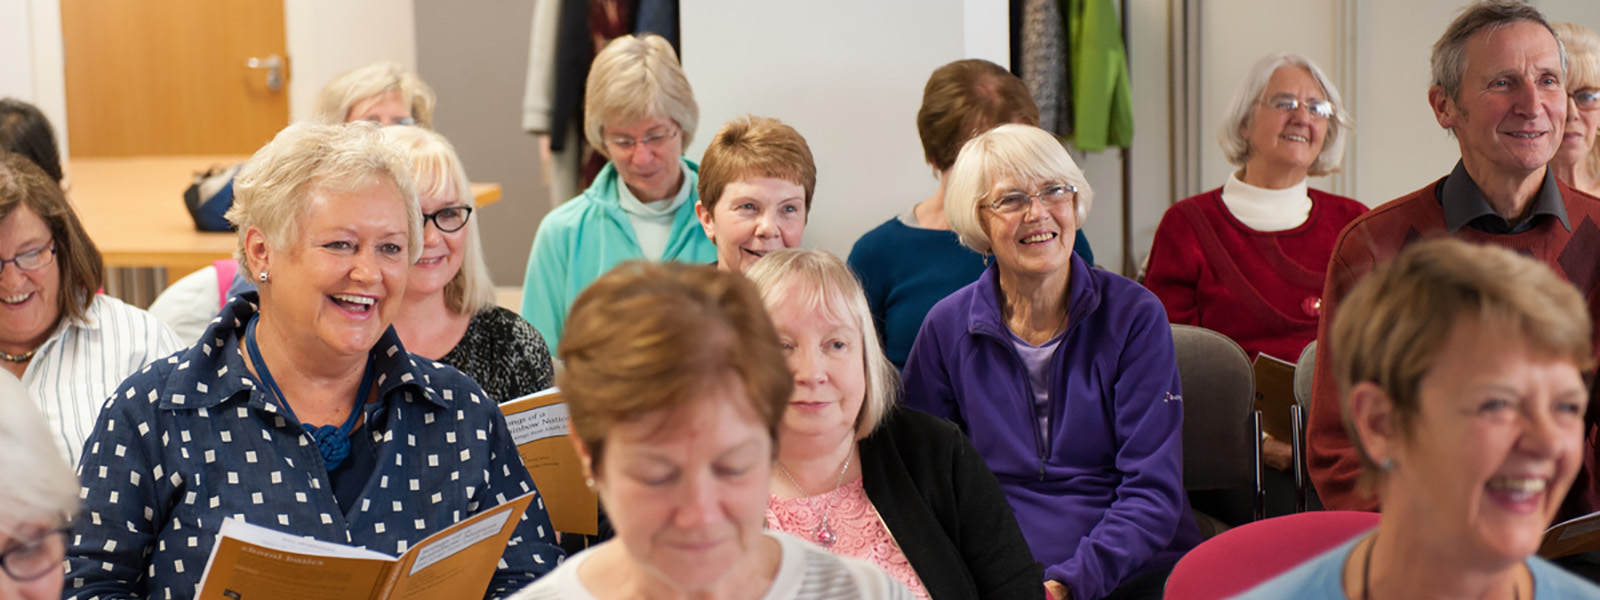 Morning choir singers at the Centre for Lifelong Learning